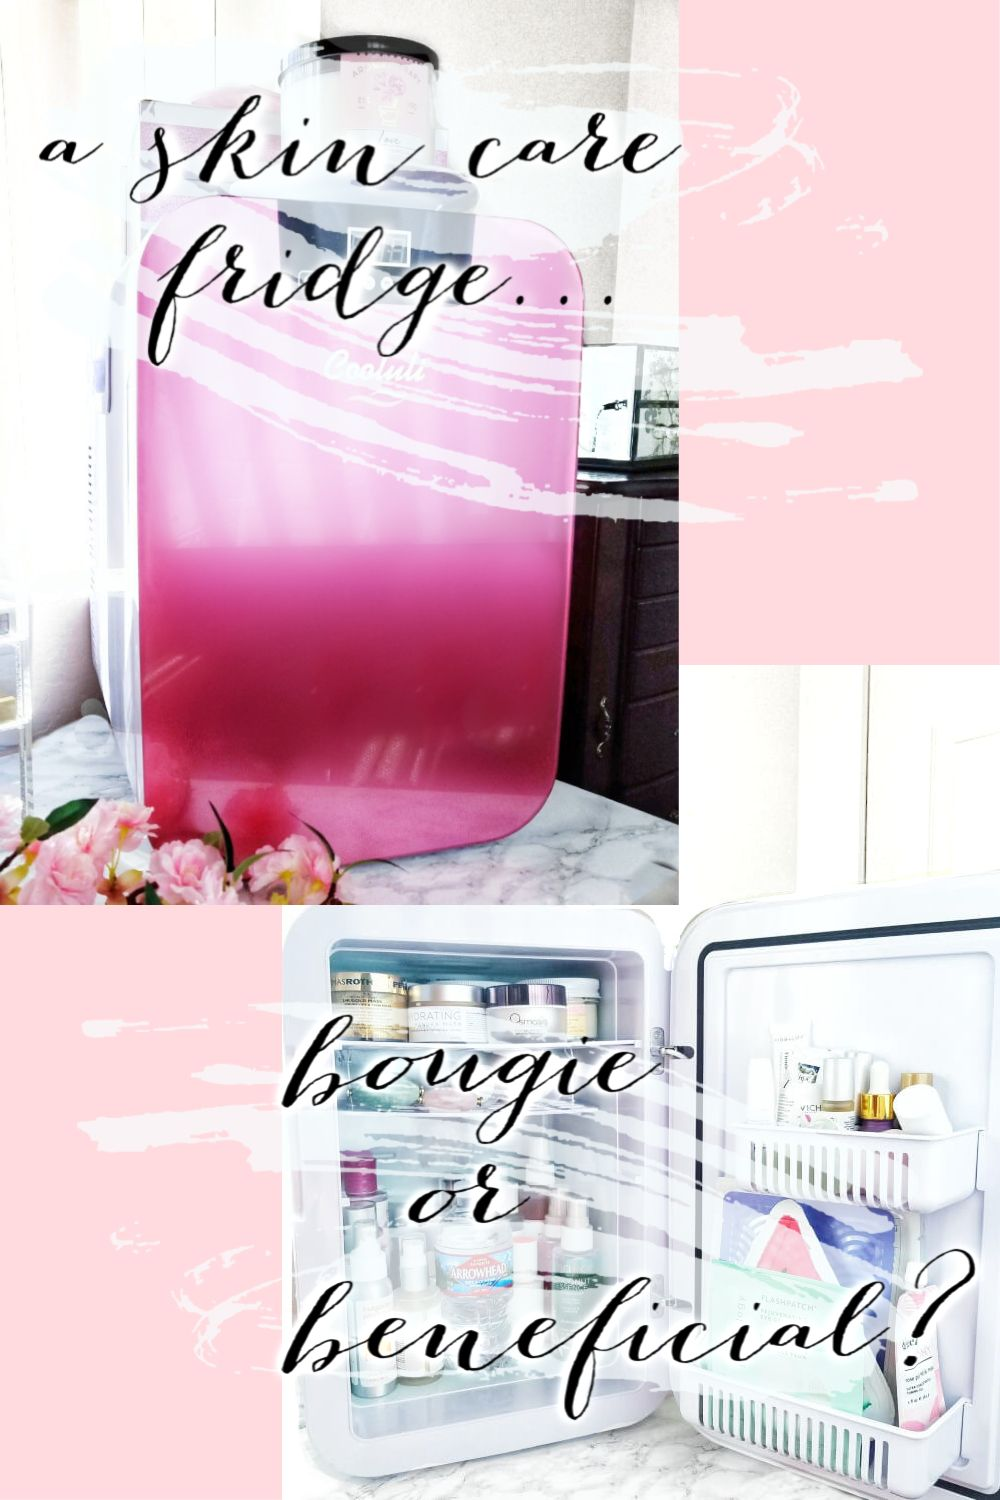 A Skin Care Fridge   Bougie or Beneficial?